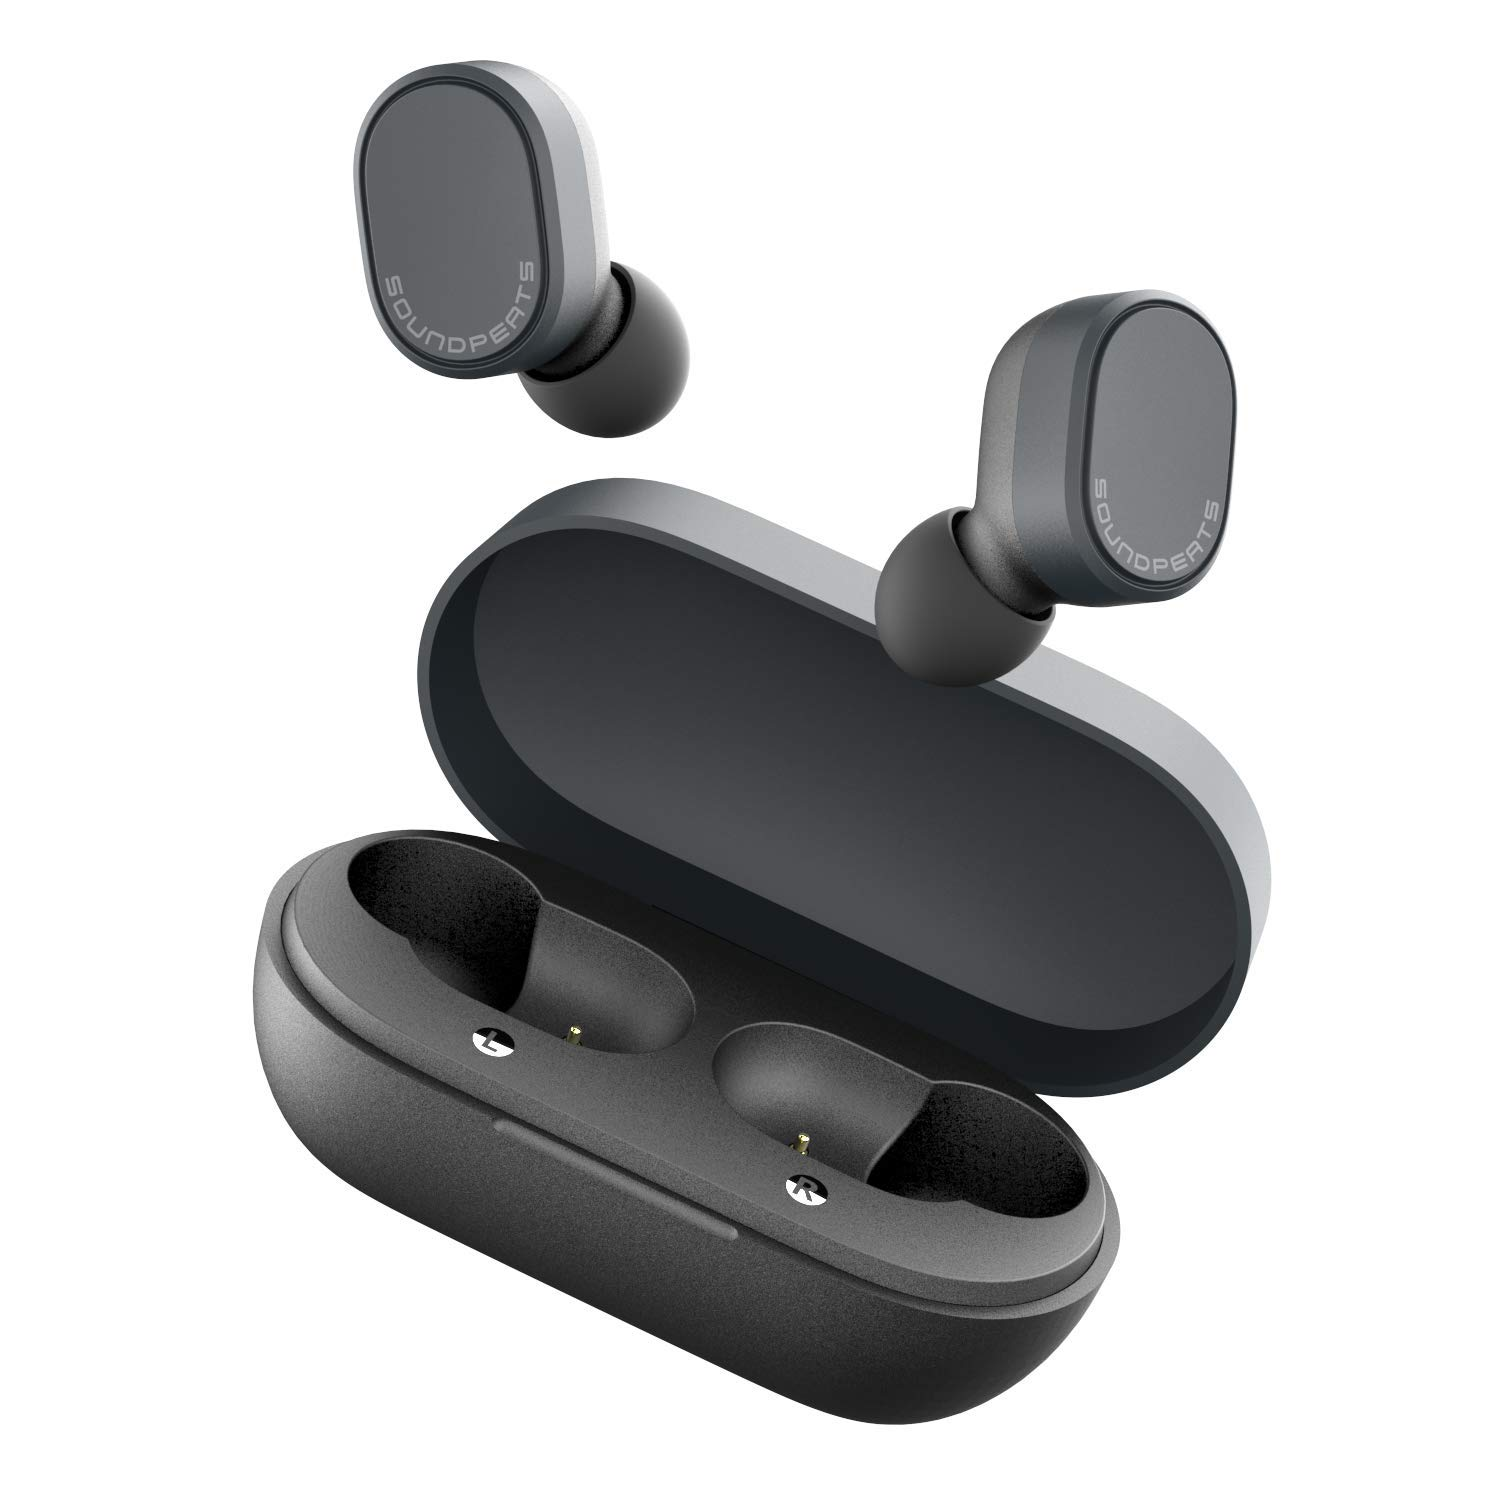 Wireless Earbuds Touch Control, SoundPEATS Truedot Bluetooh 5.0 Wireless Headphones 7.2 mm Drivers in-Ear Stereo Auto-Pair Earphones with Mic,Binaural/Monaural Calls,Smart Touch,IPX5, 16H Playtime